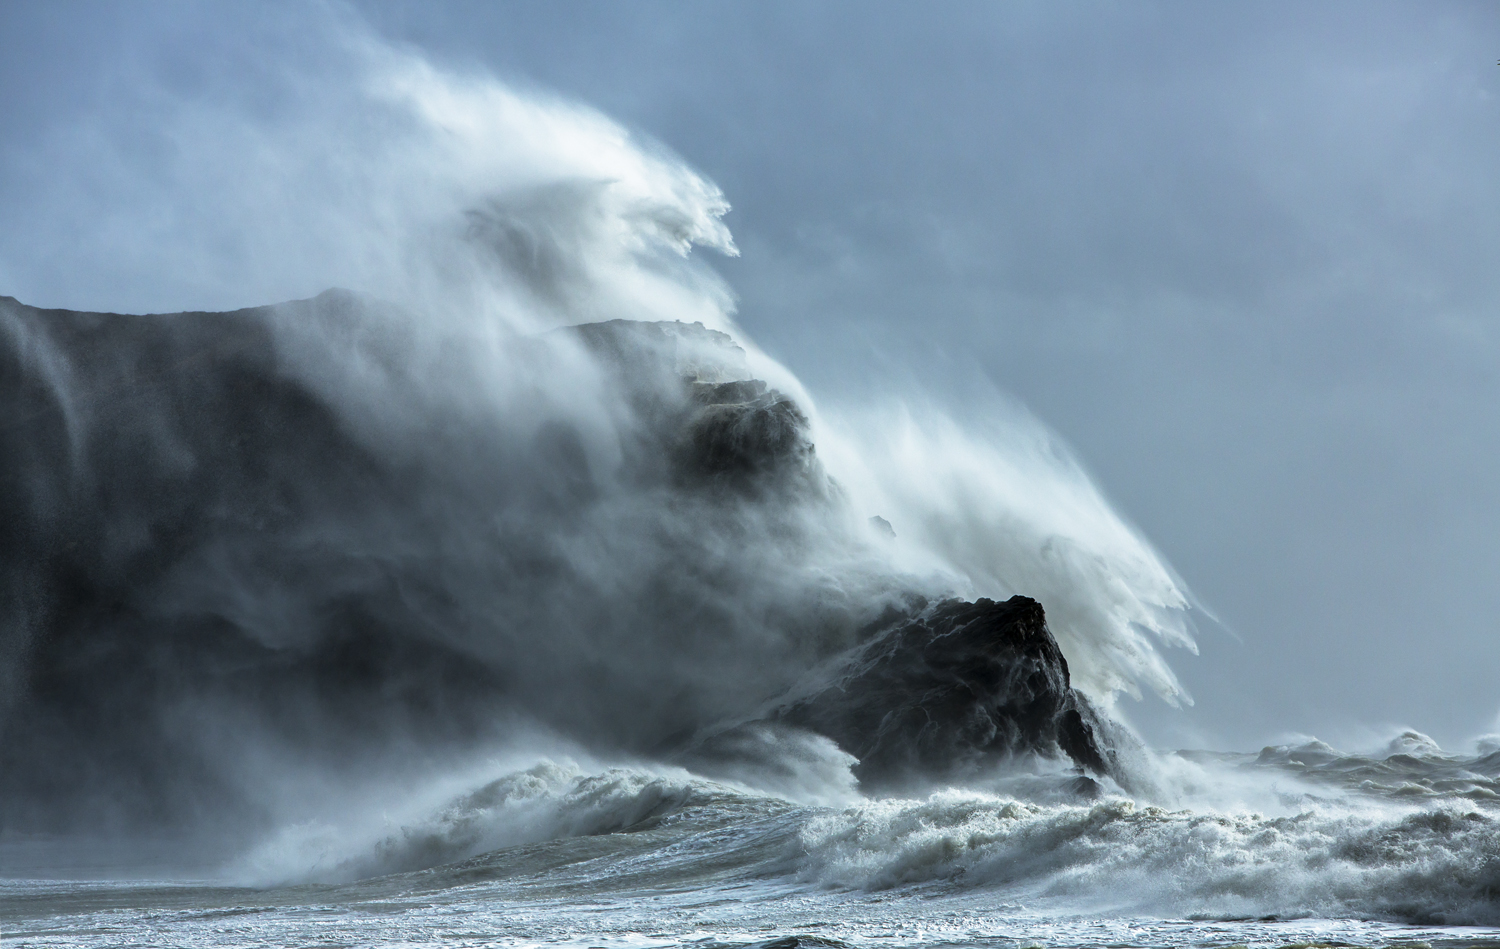 Huge waves at Lulworth Cove, Dorset